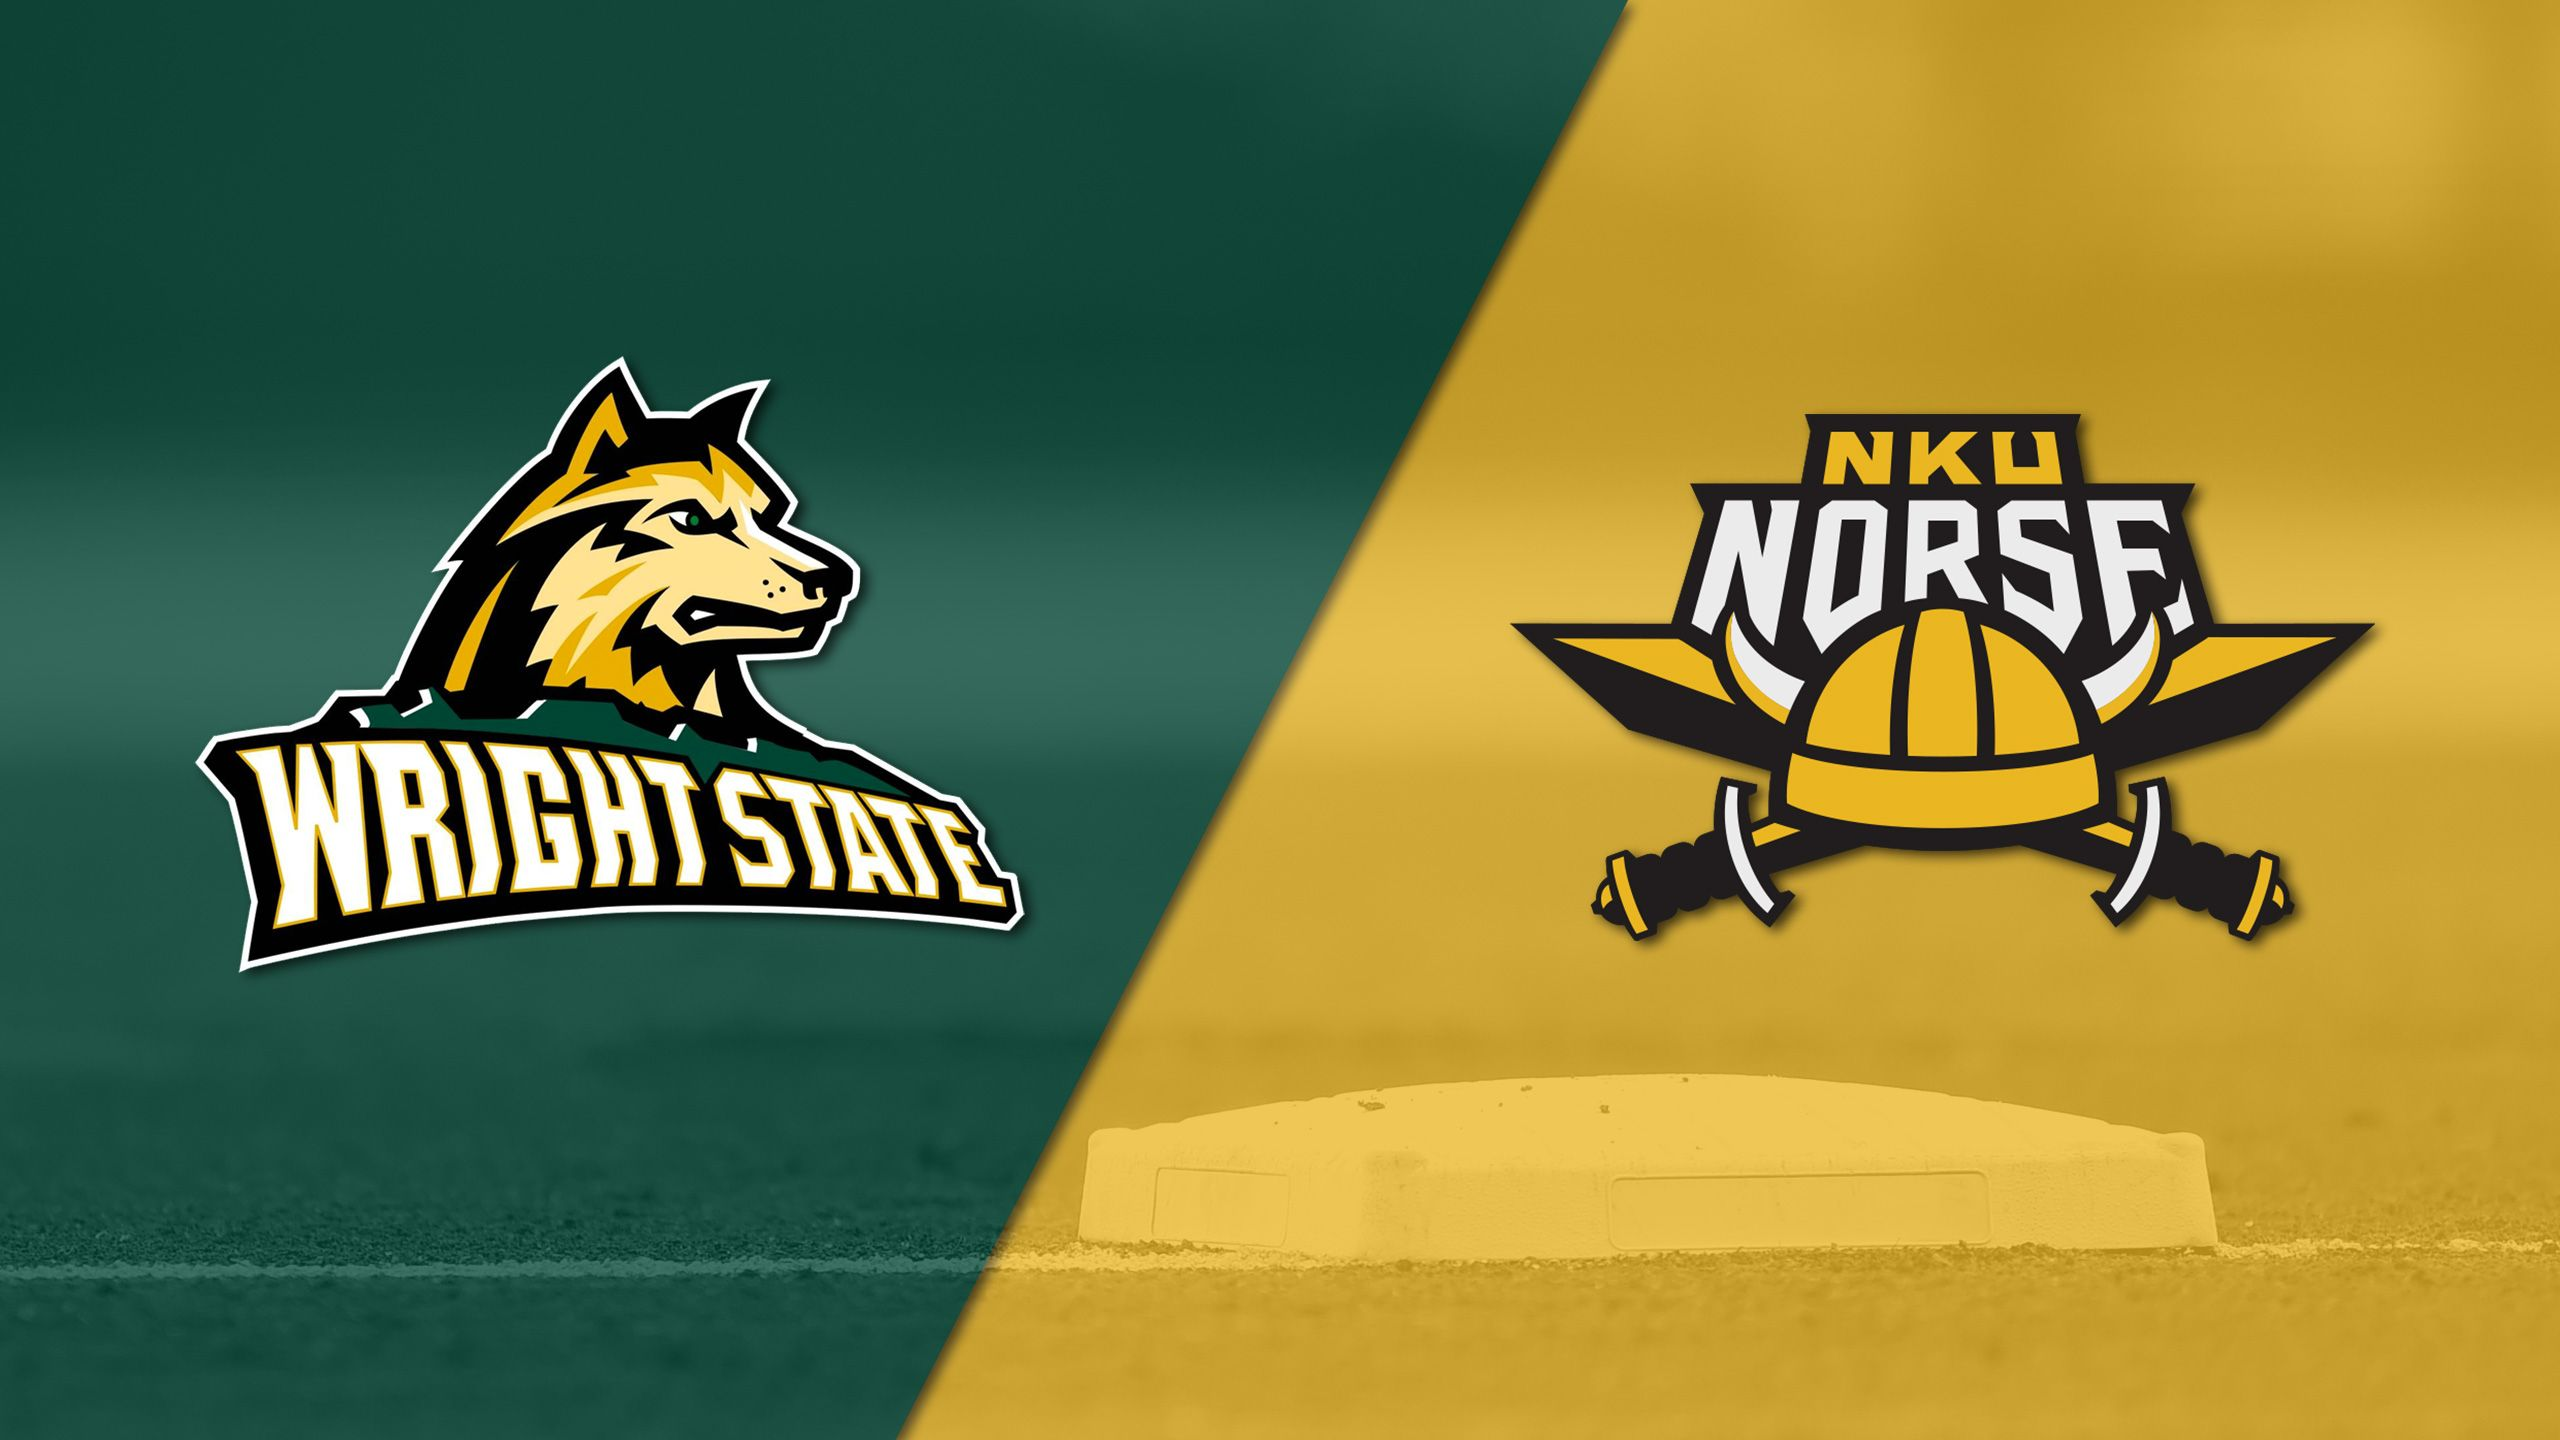 Wright State vs. Northern Kentucky (Baseball)